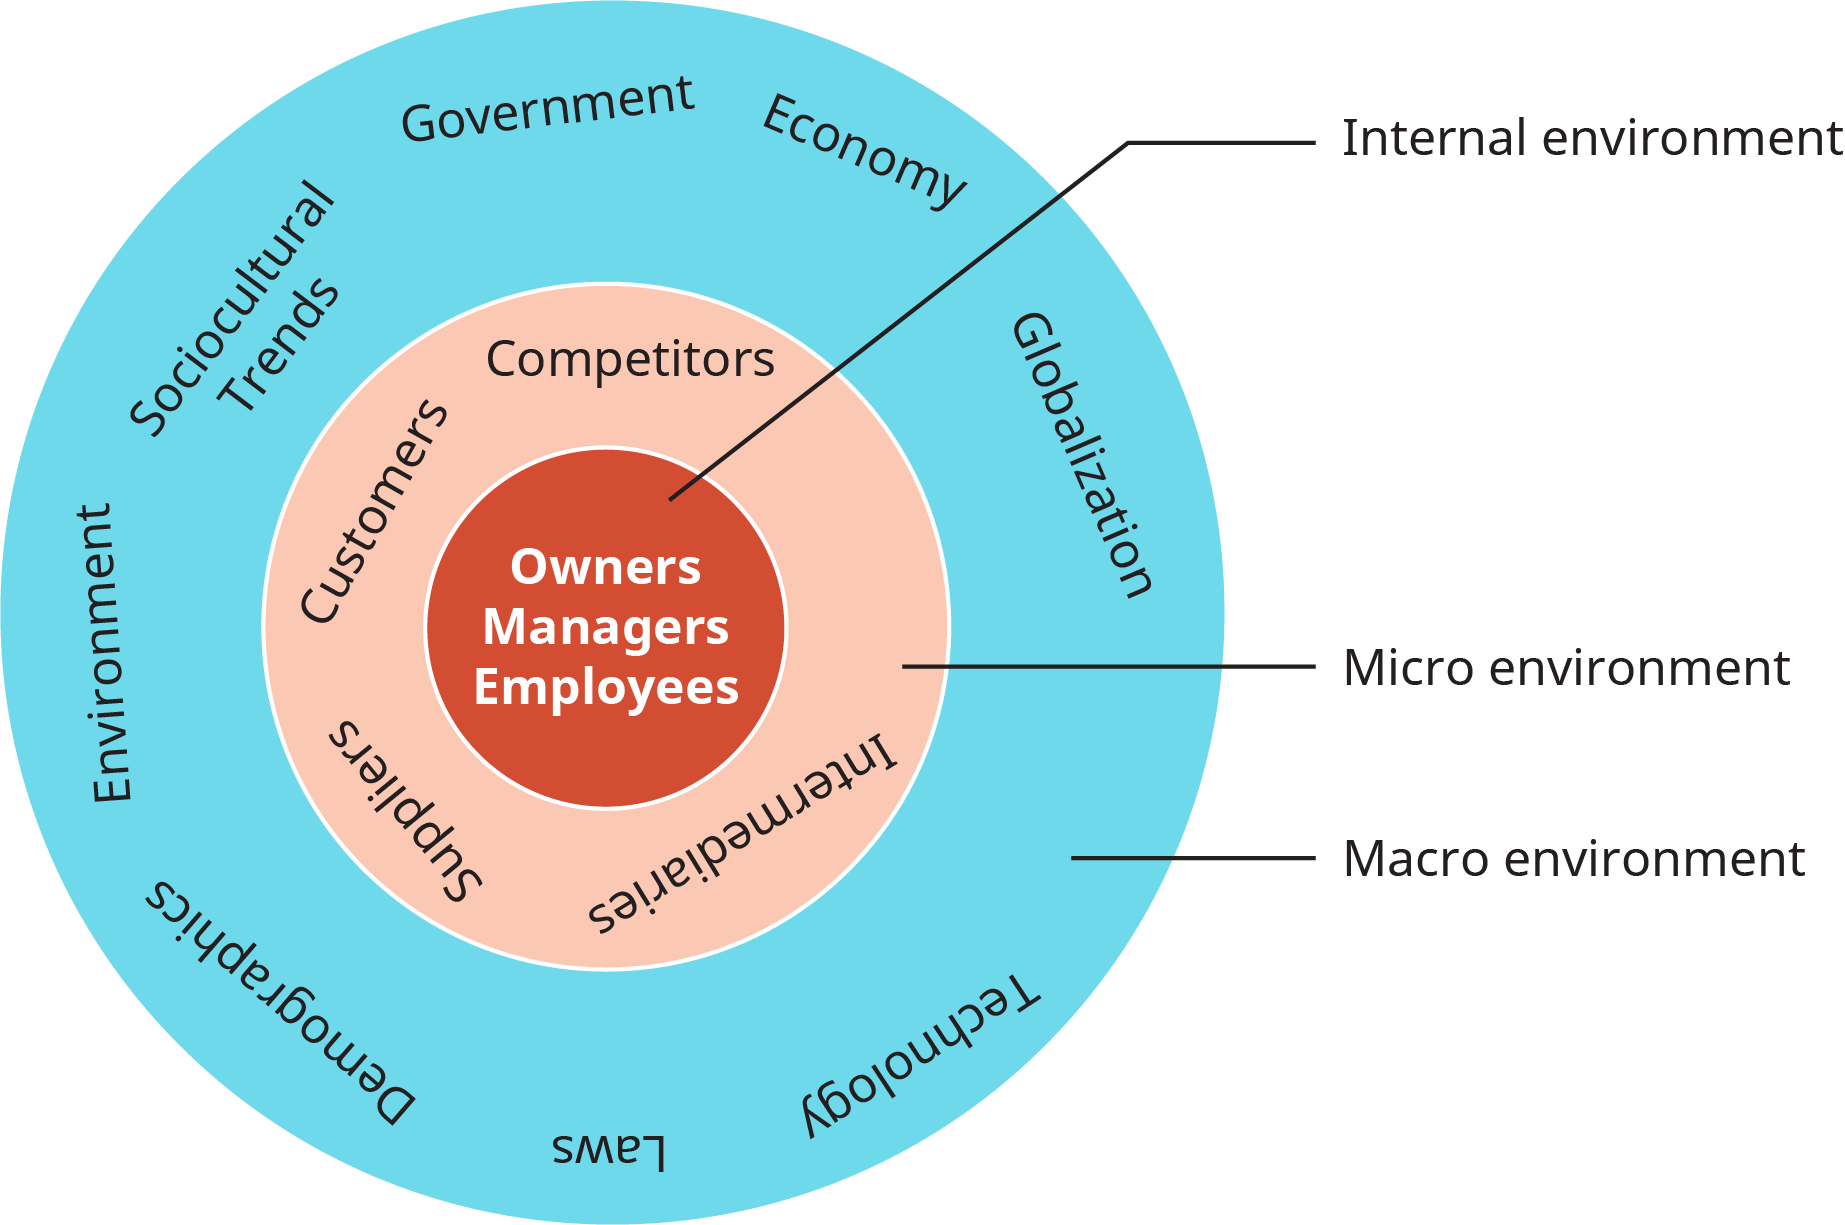 A diagram shows the layers and categories in the environment of a firm.